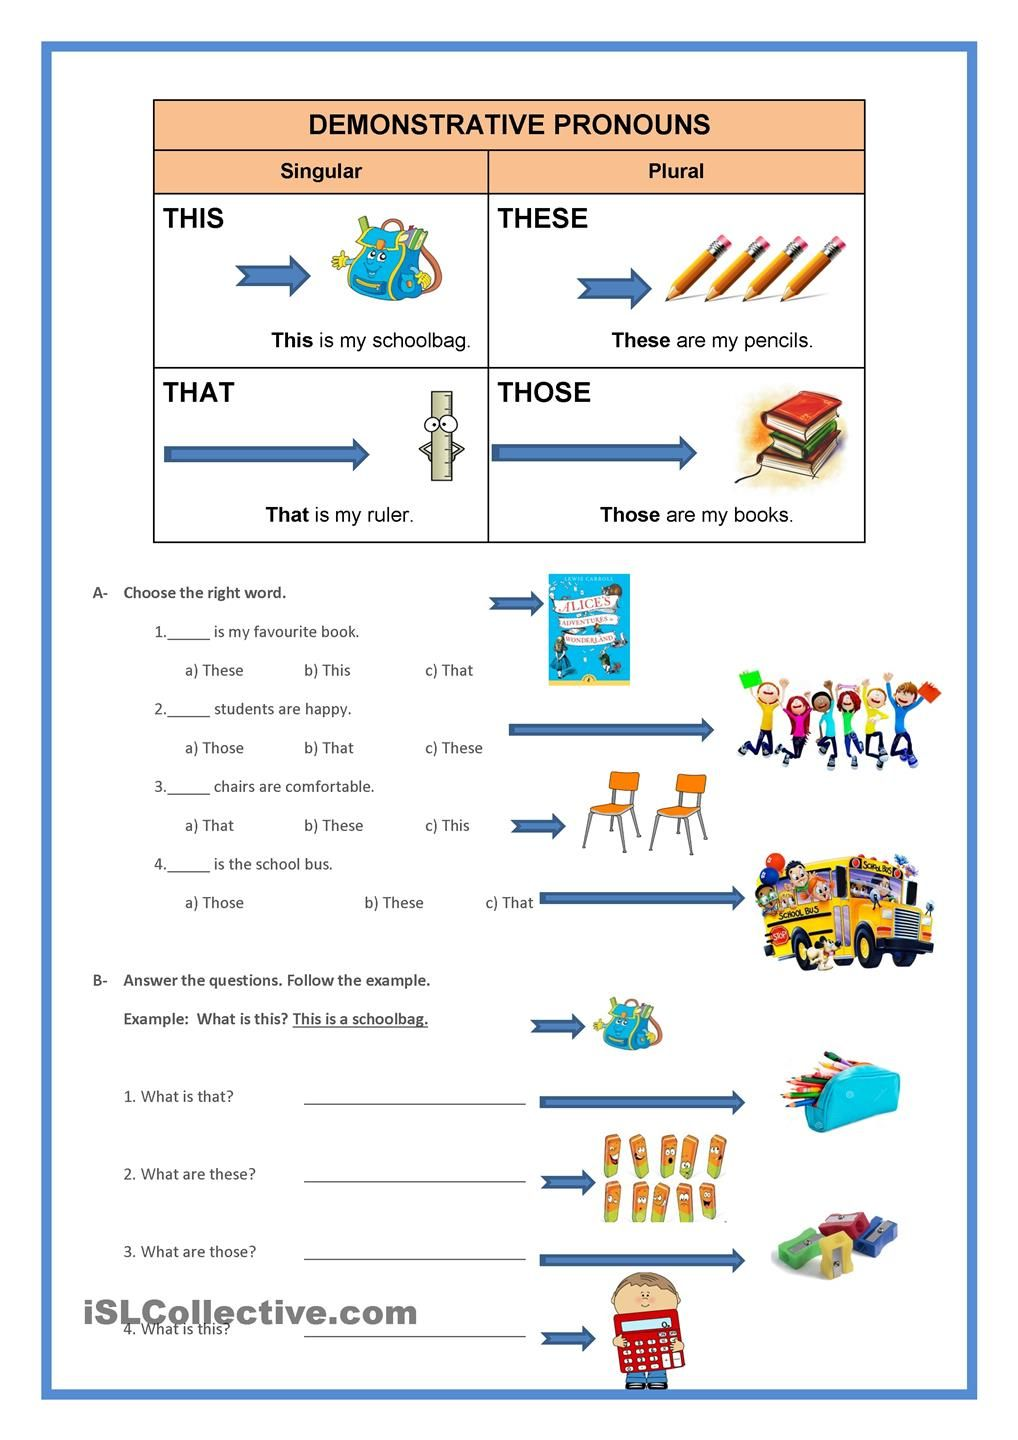 demonstrative pronouns teaching 1st grade demonstrative pronouns pronoun worksheets. Black Bedroom Furniture Sets. Home Design Ideas